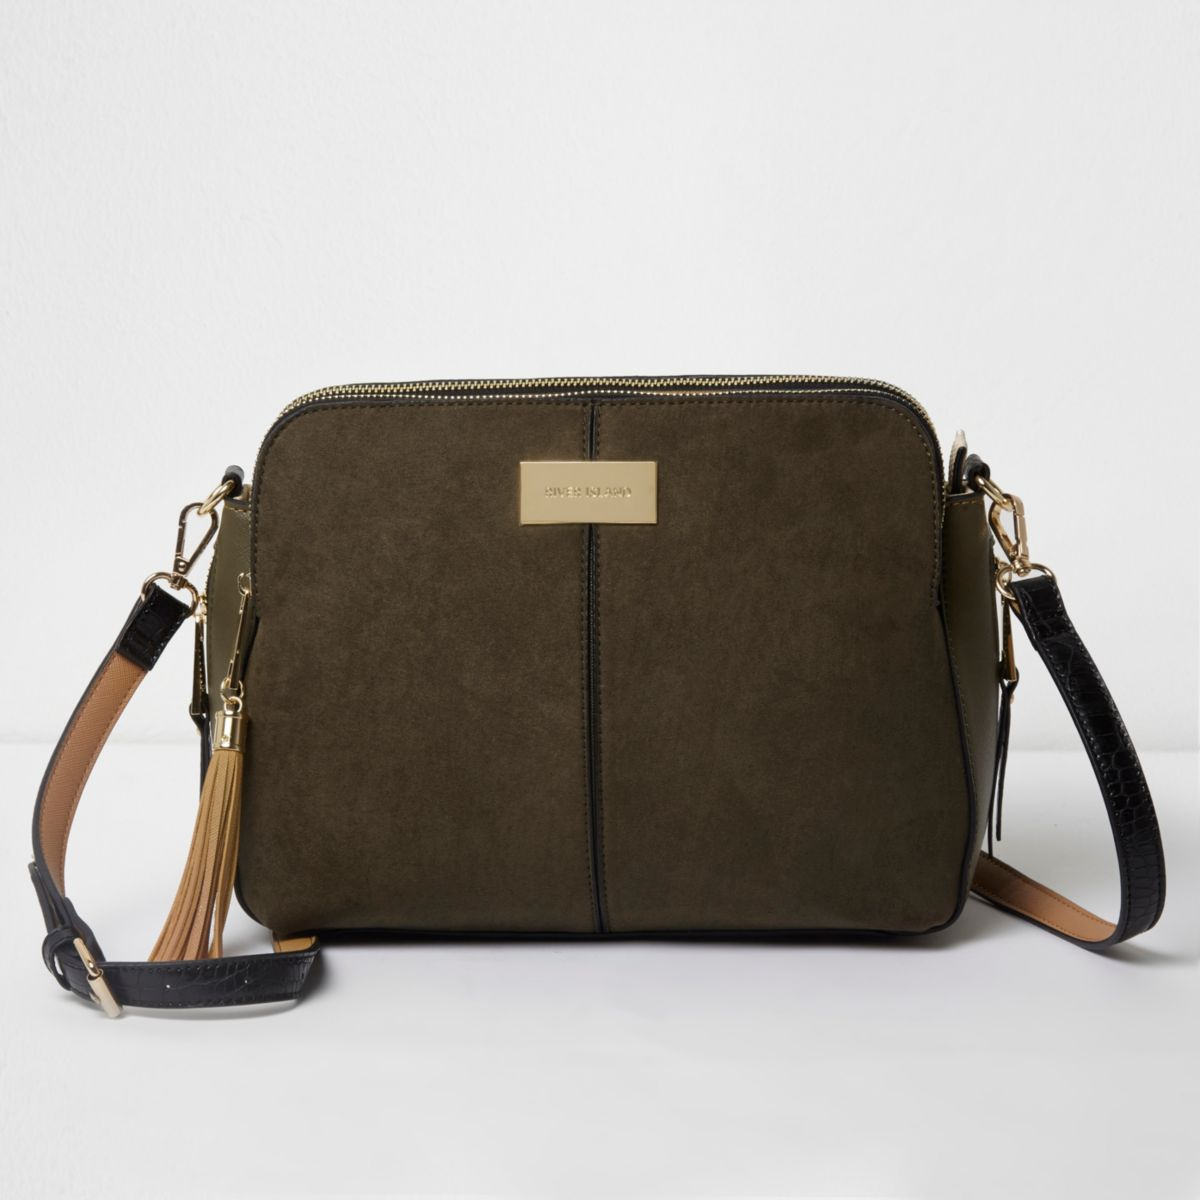 River Island Cross Body Bags   Browse All Cross The Body Bags